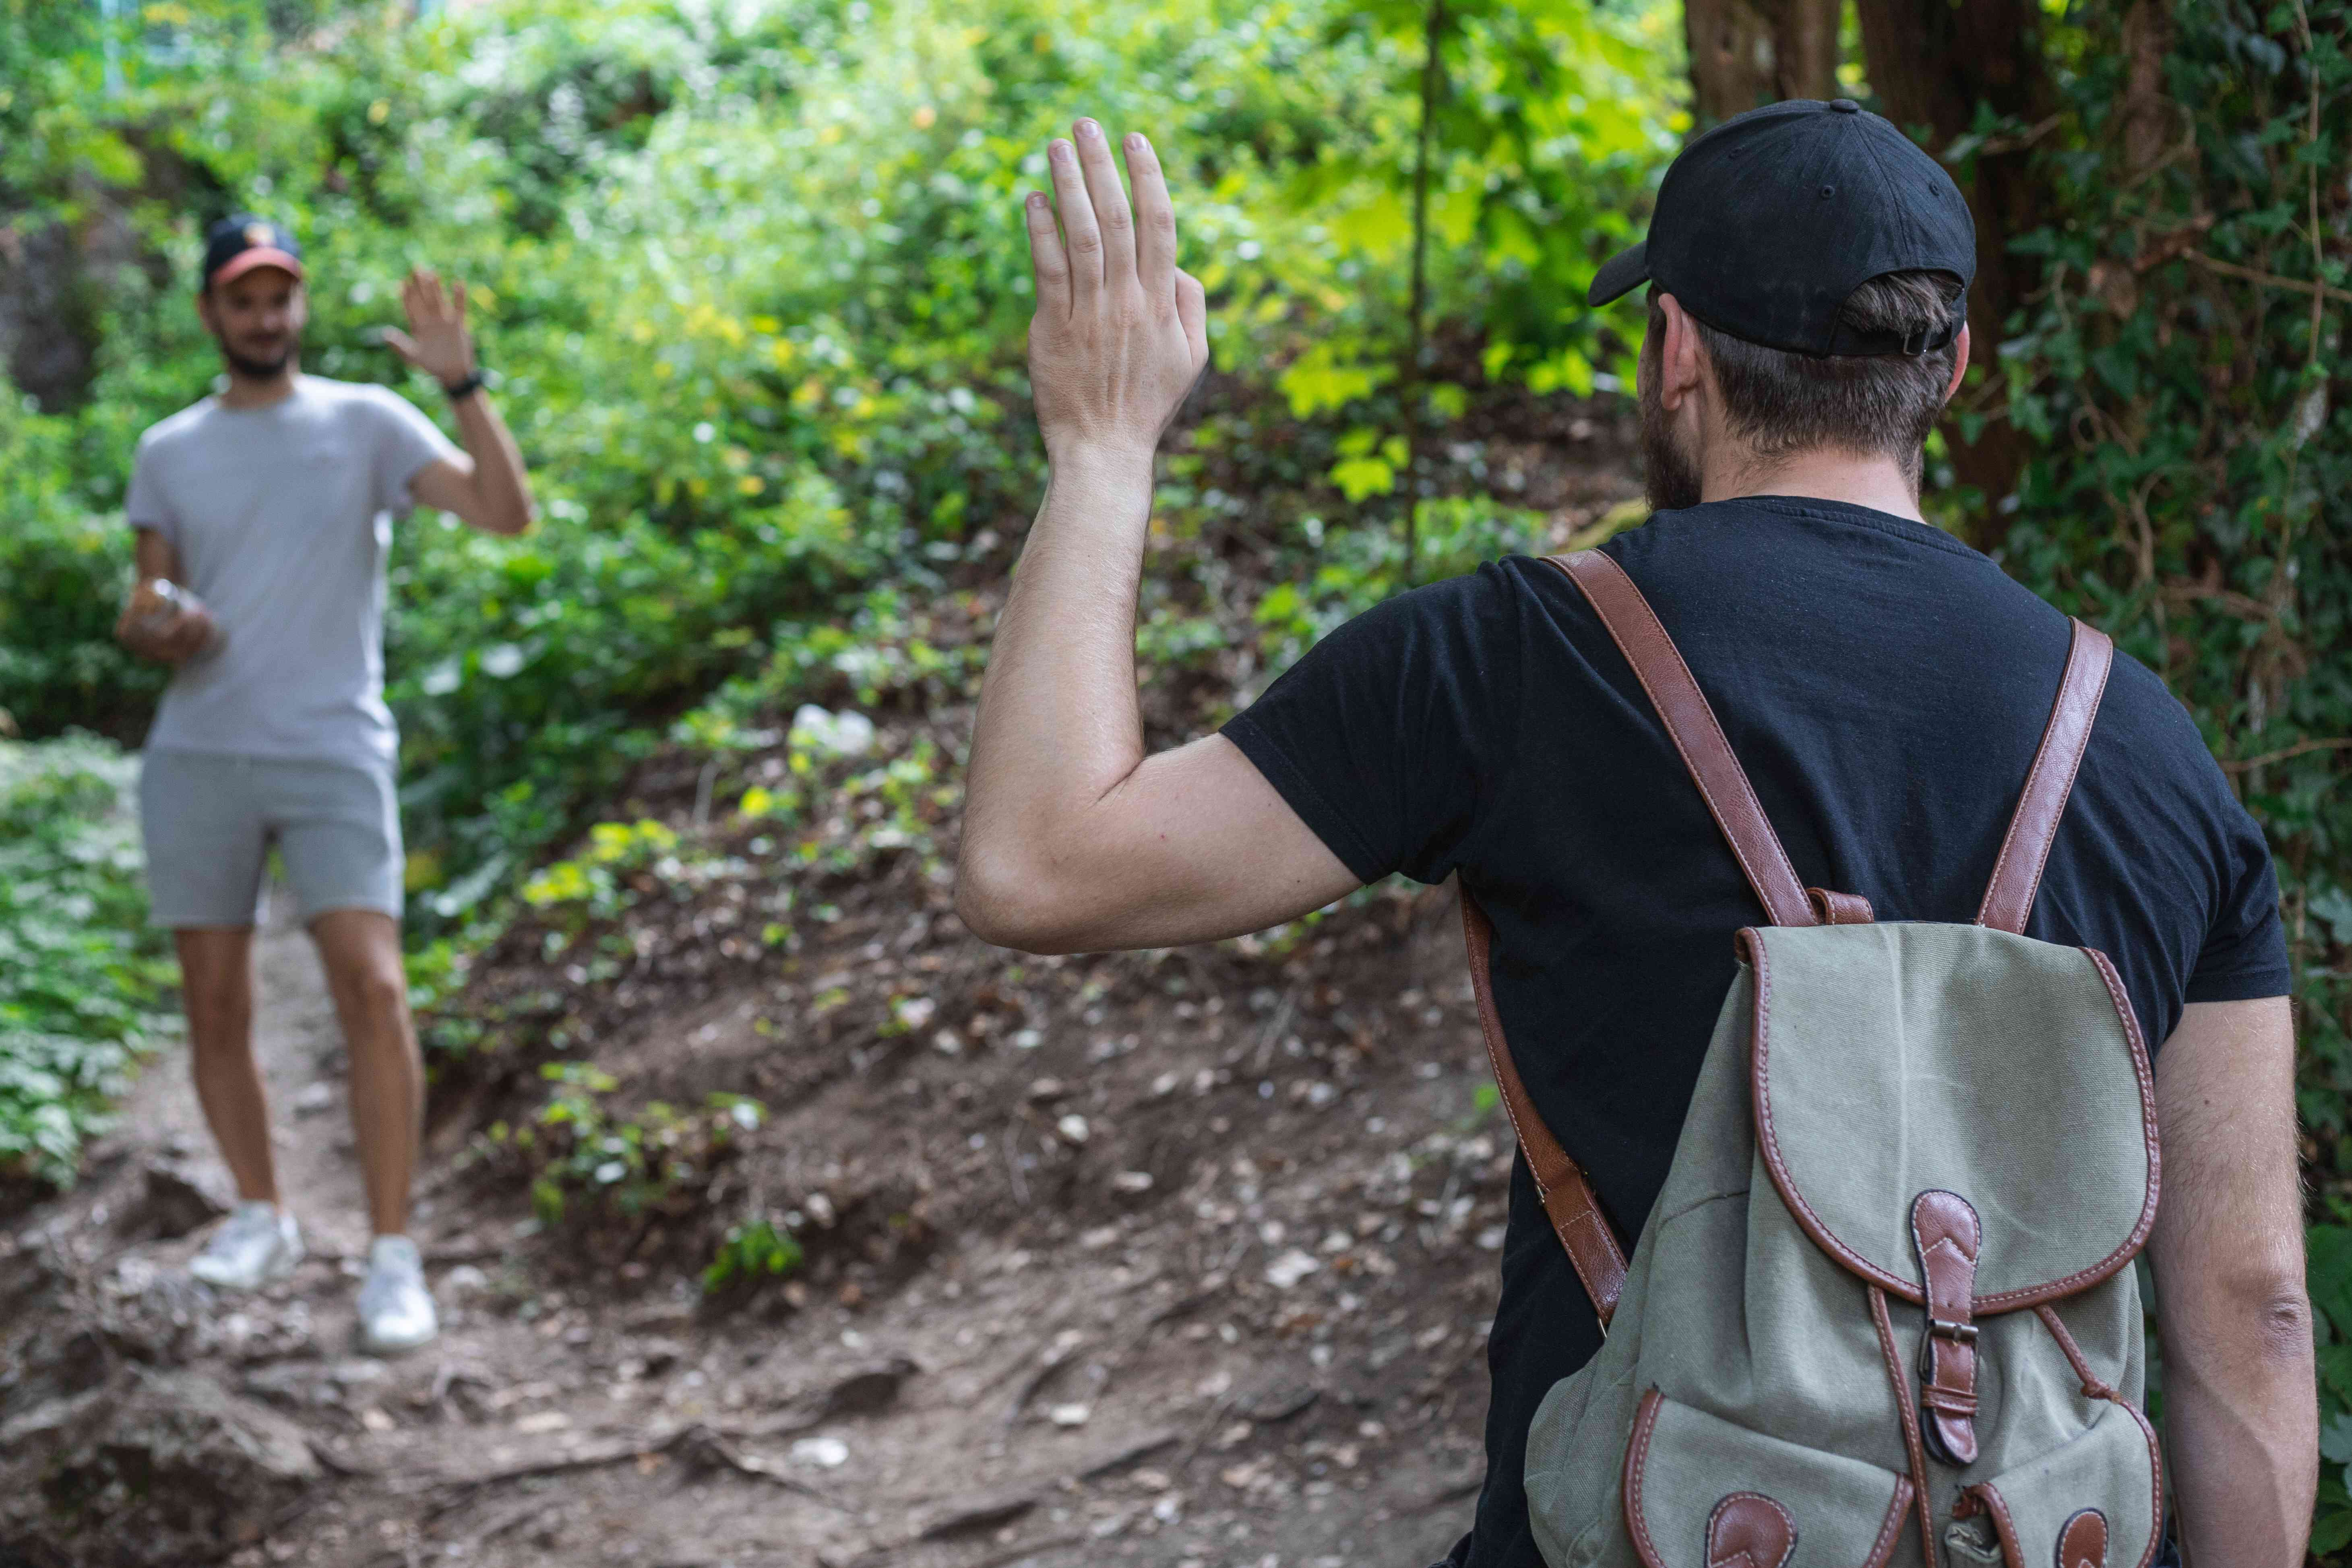 two guys pass each other on hiking trail and wave hello to be friendly